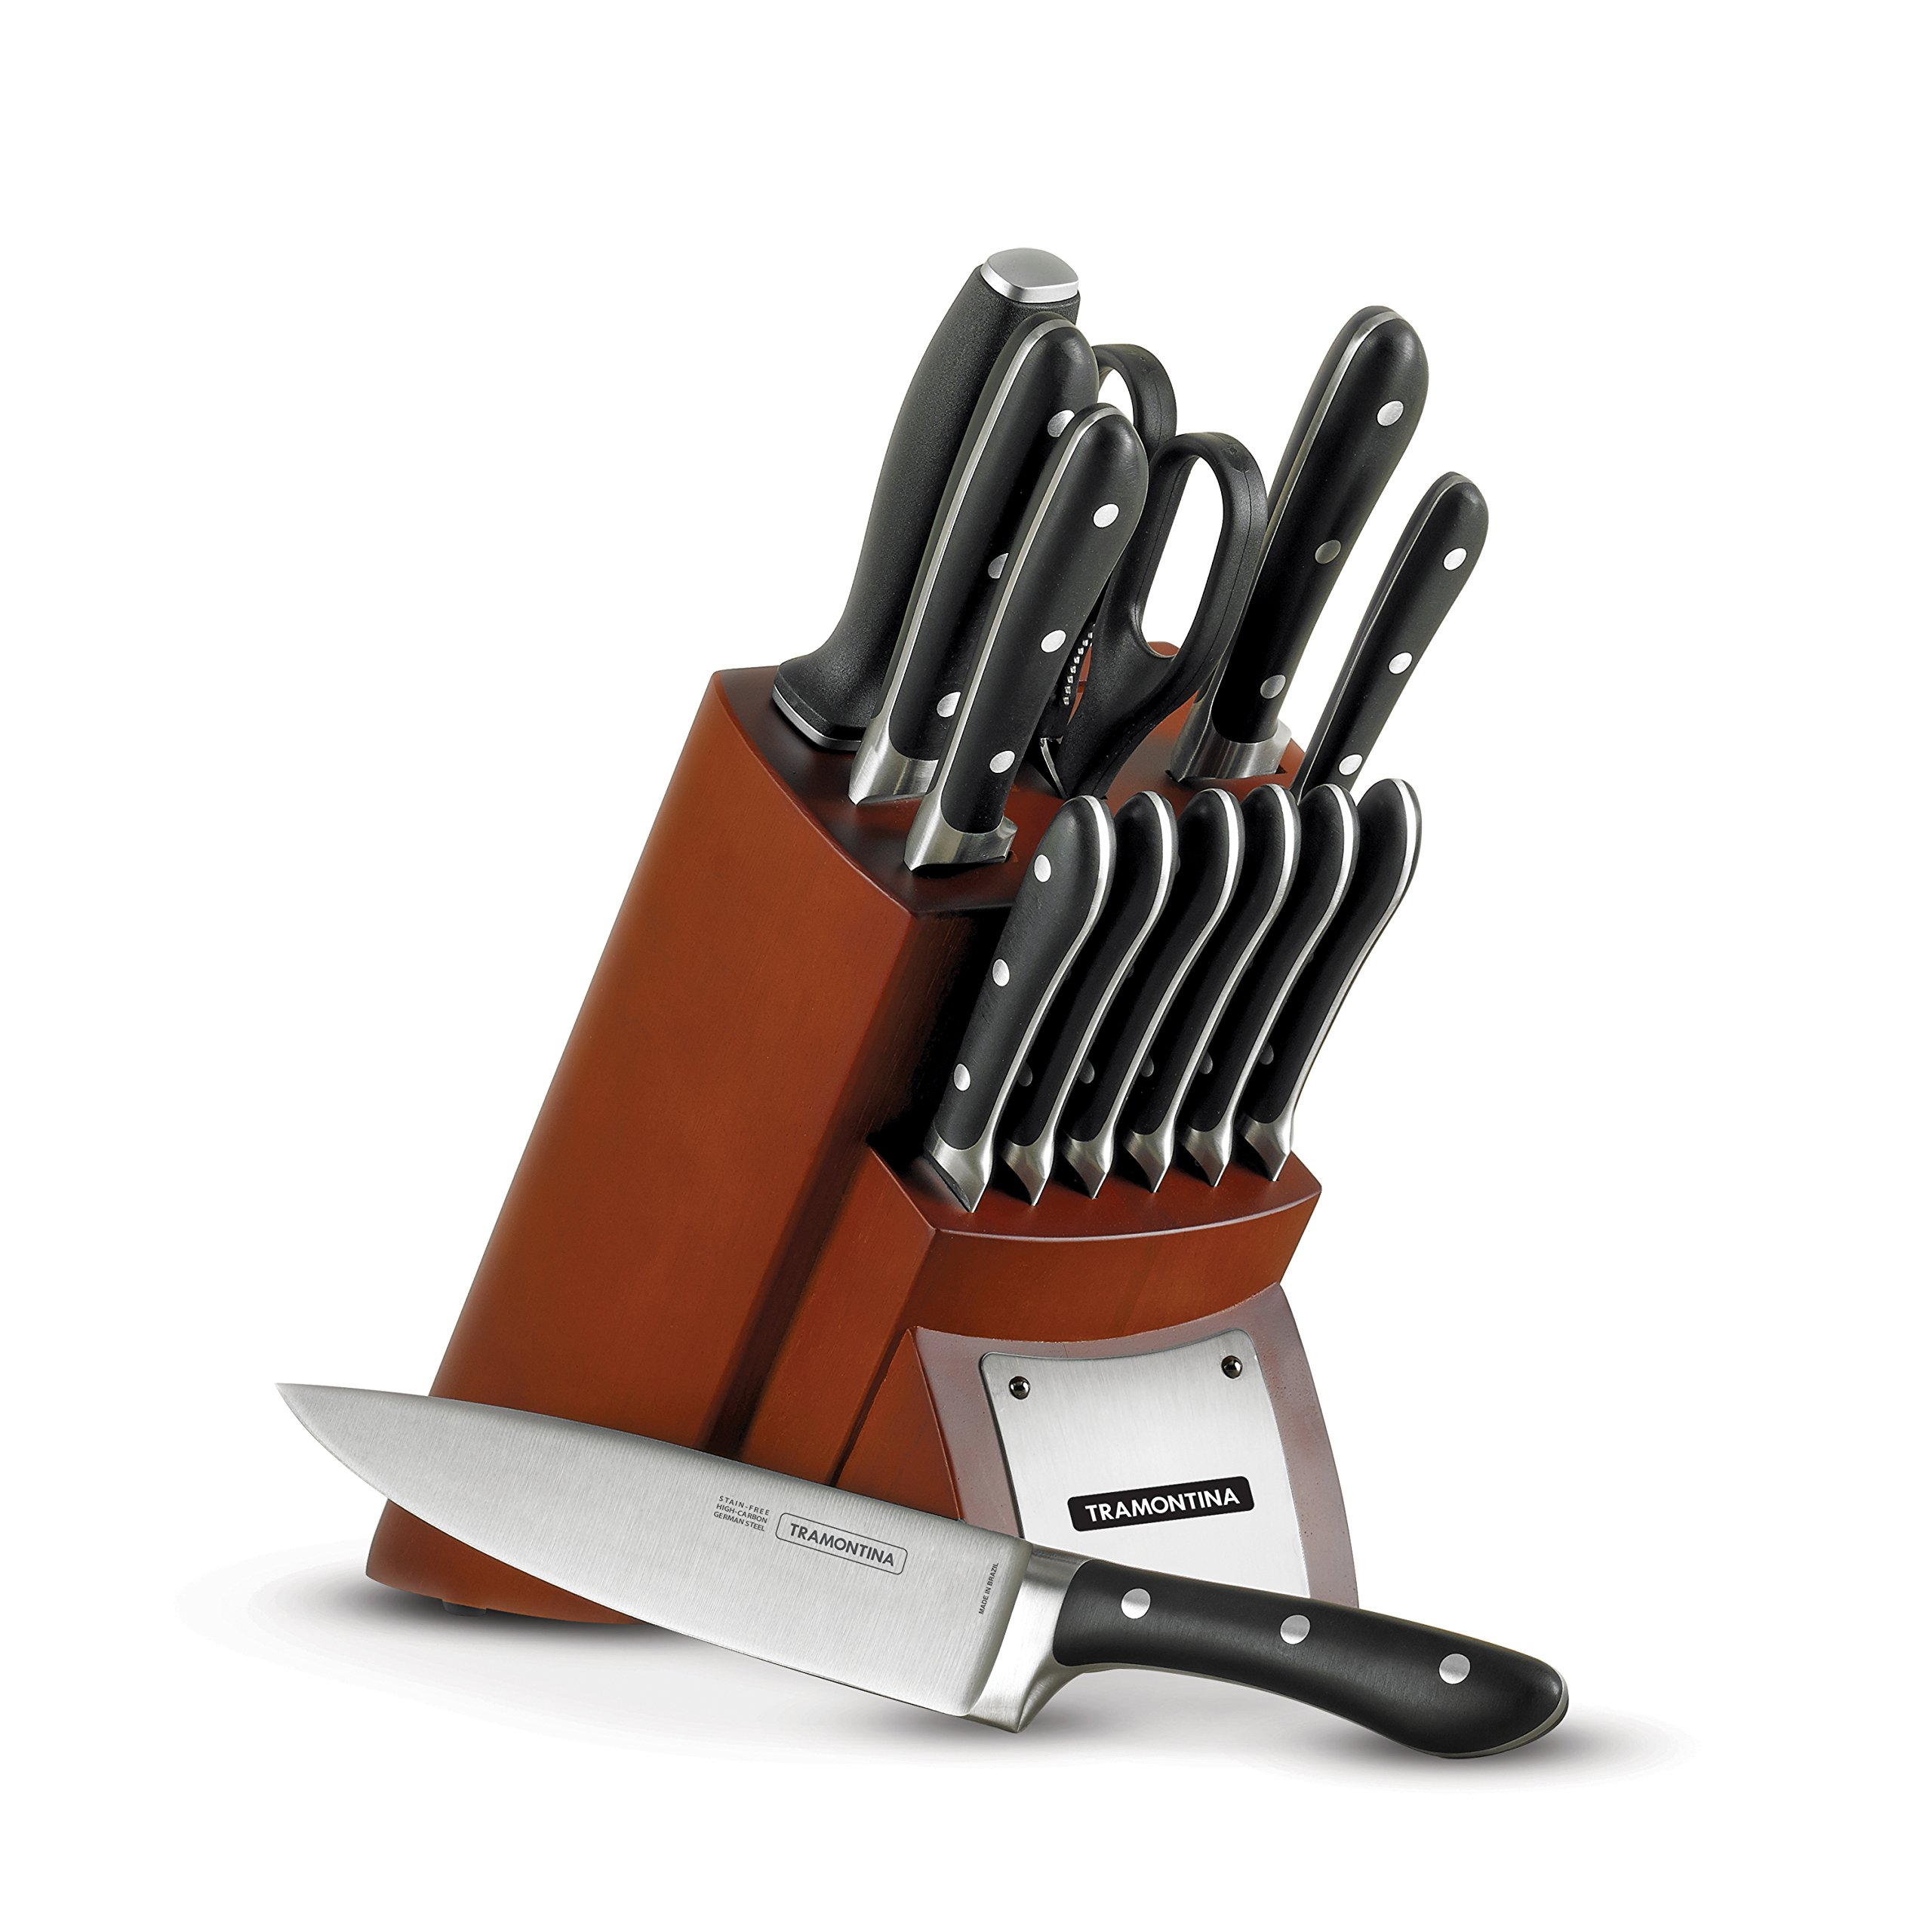 Tramontina 80008/547DS Gourmet Forged-Contemporary14 Piece Cutlery Knife Set with Hardwood Counter Block by Tramontina USA, Inc.